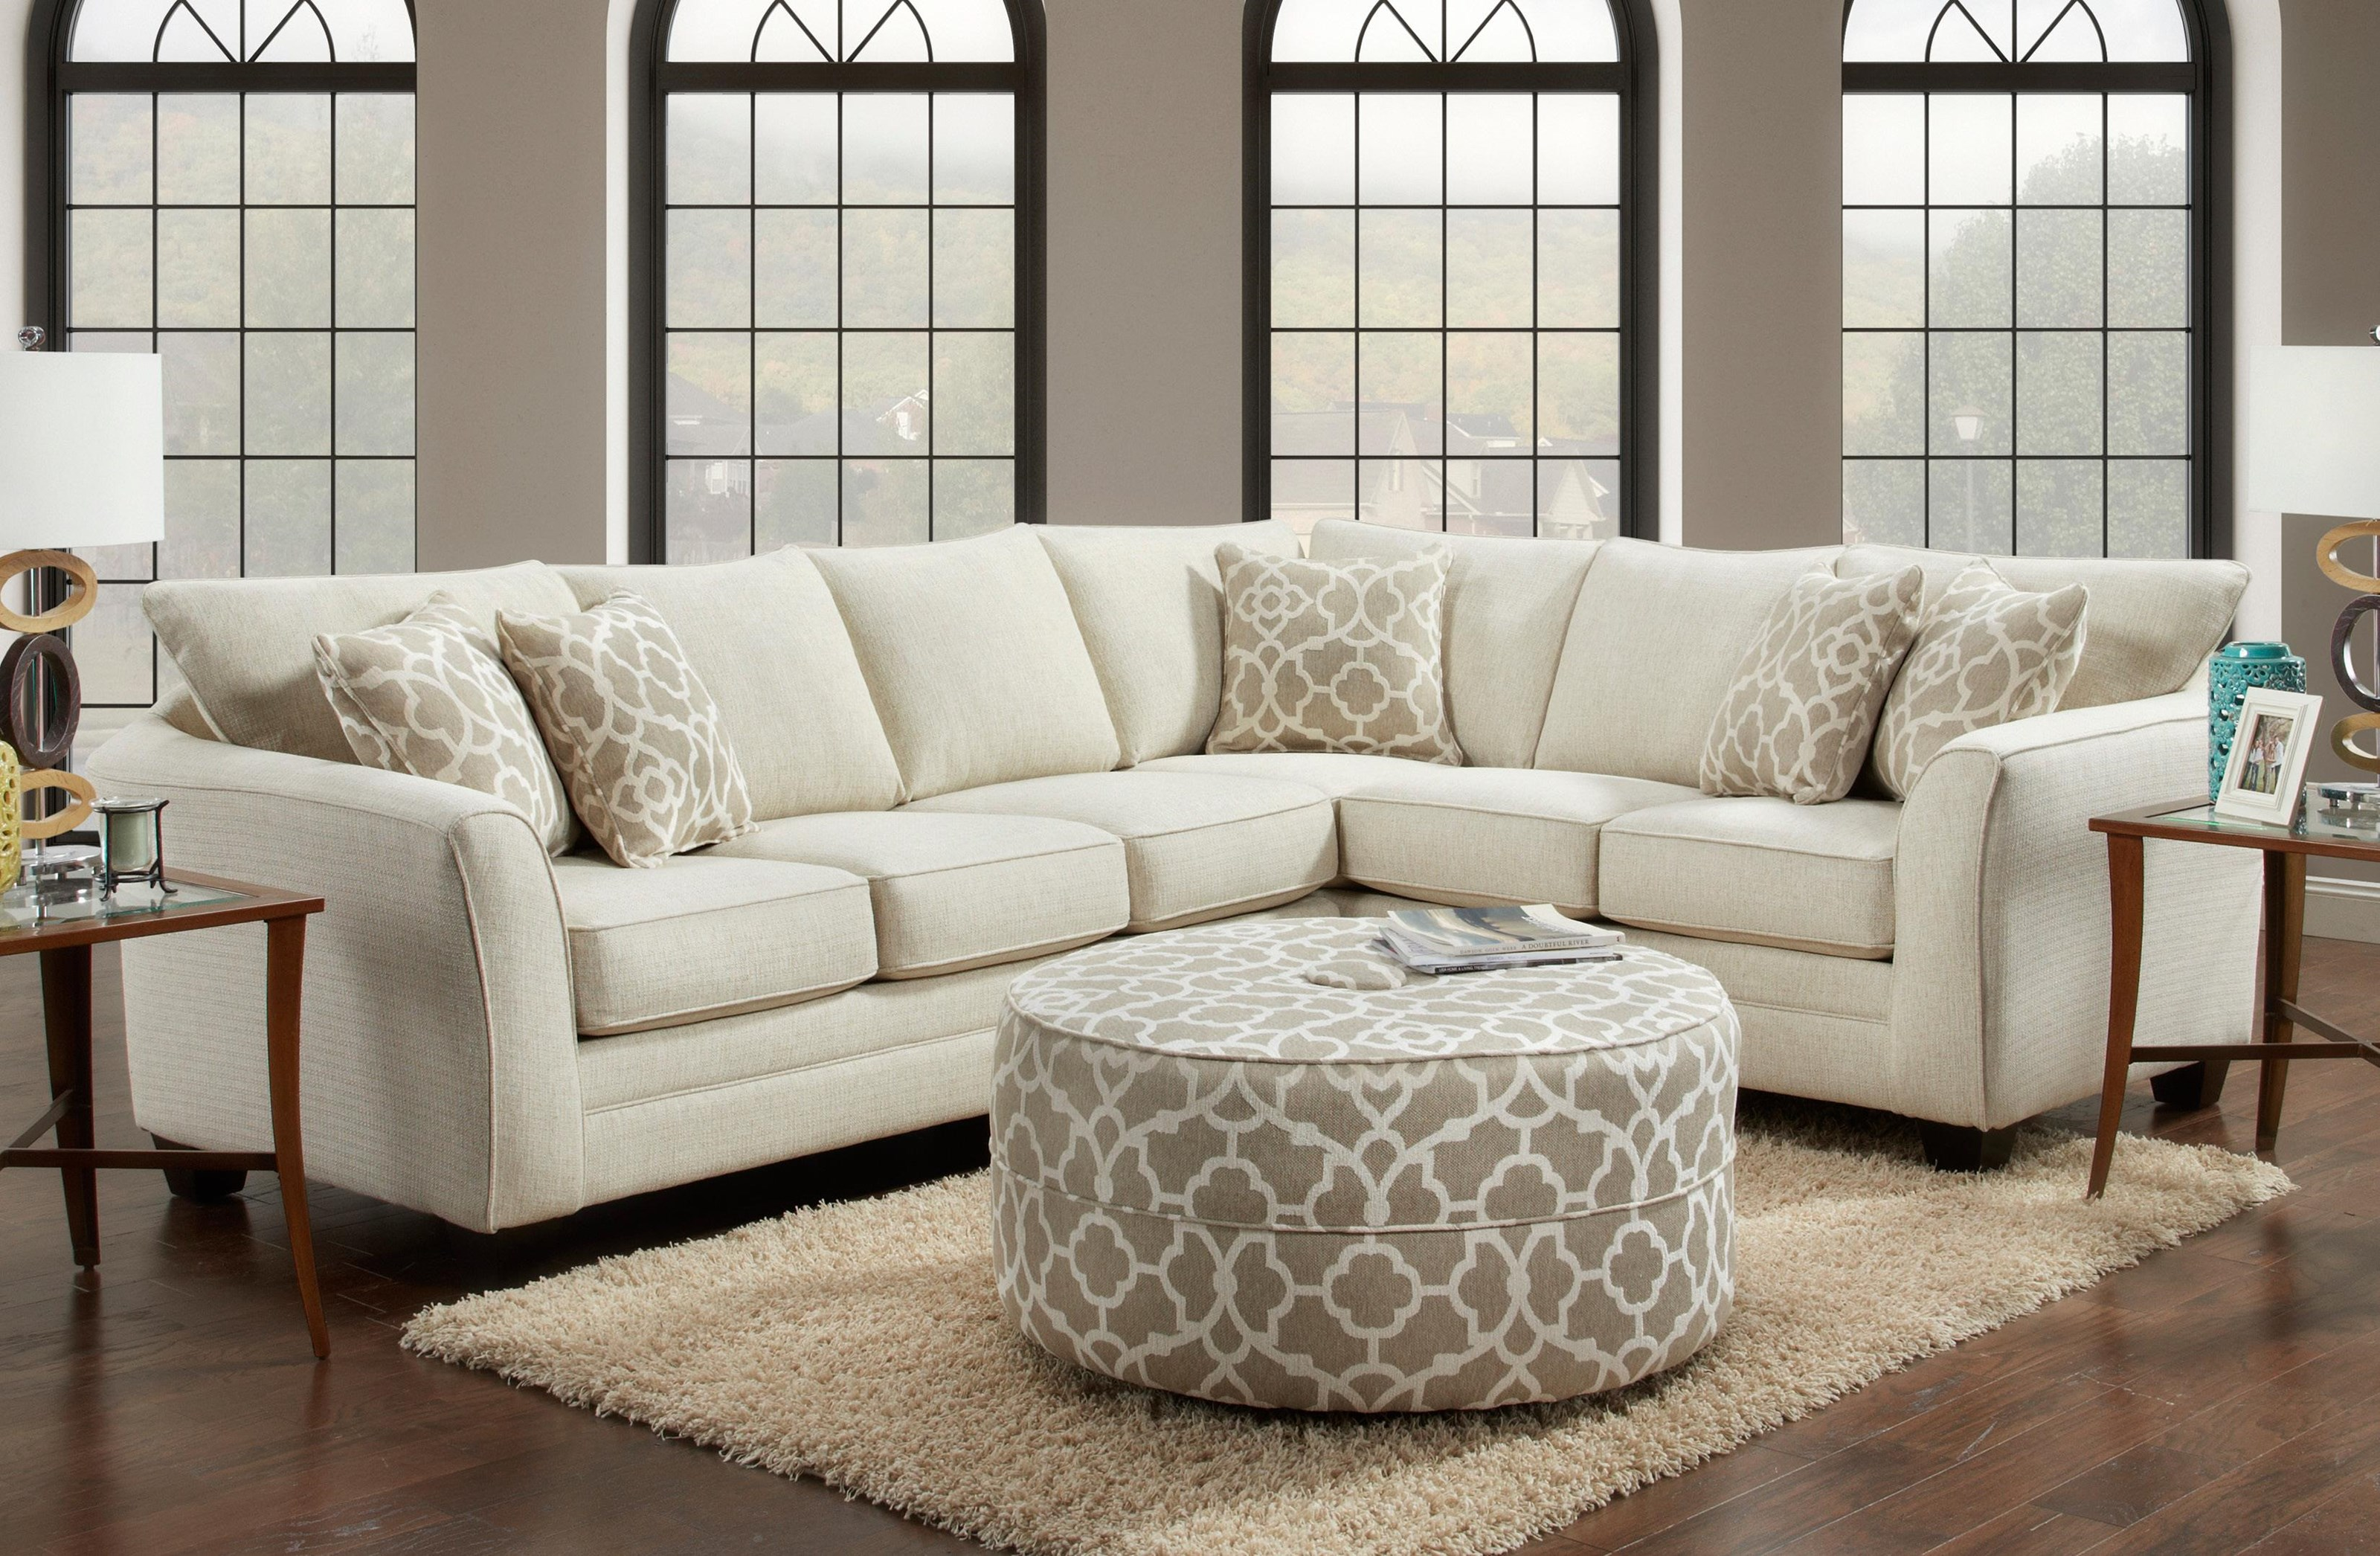 Fenwick 2019 London 2 Piece Sectional by J Furniture at Johnny Janosik